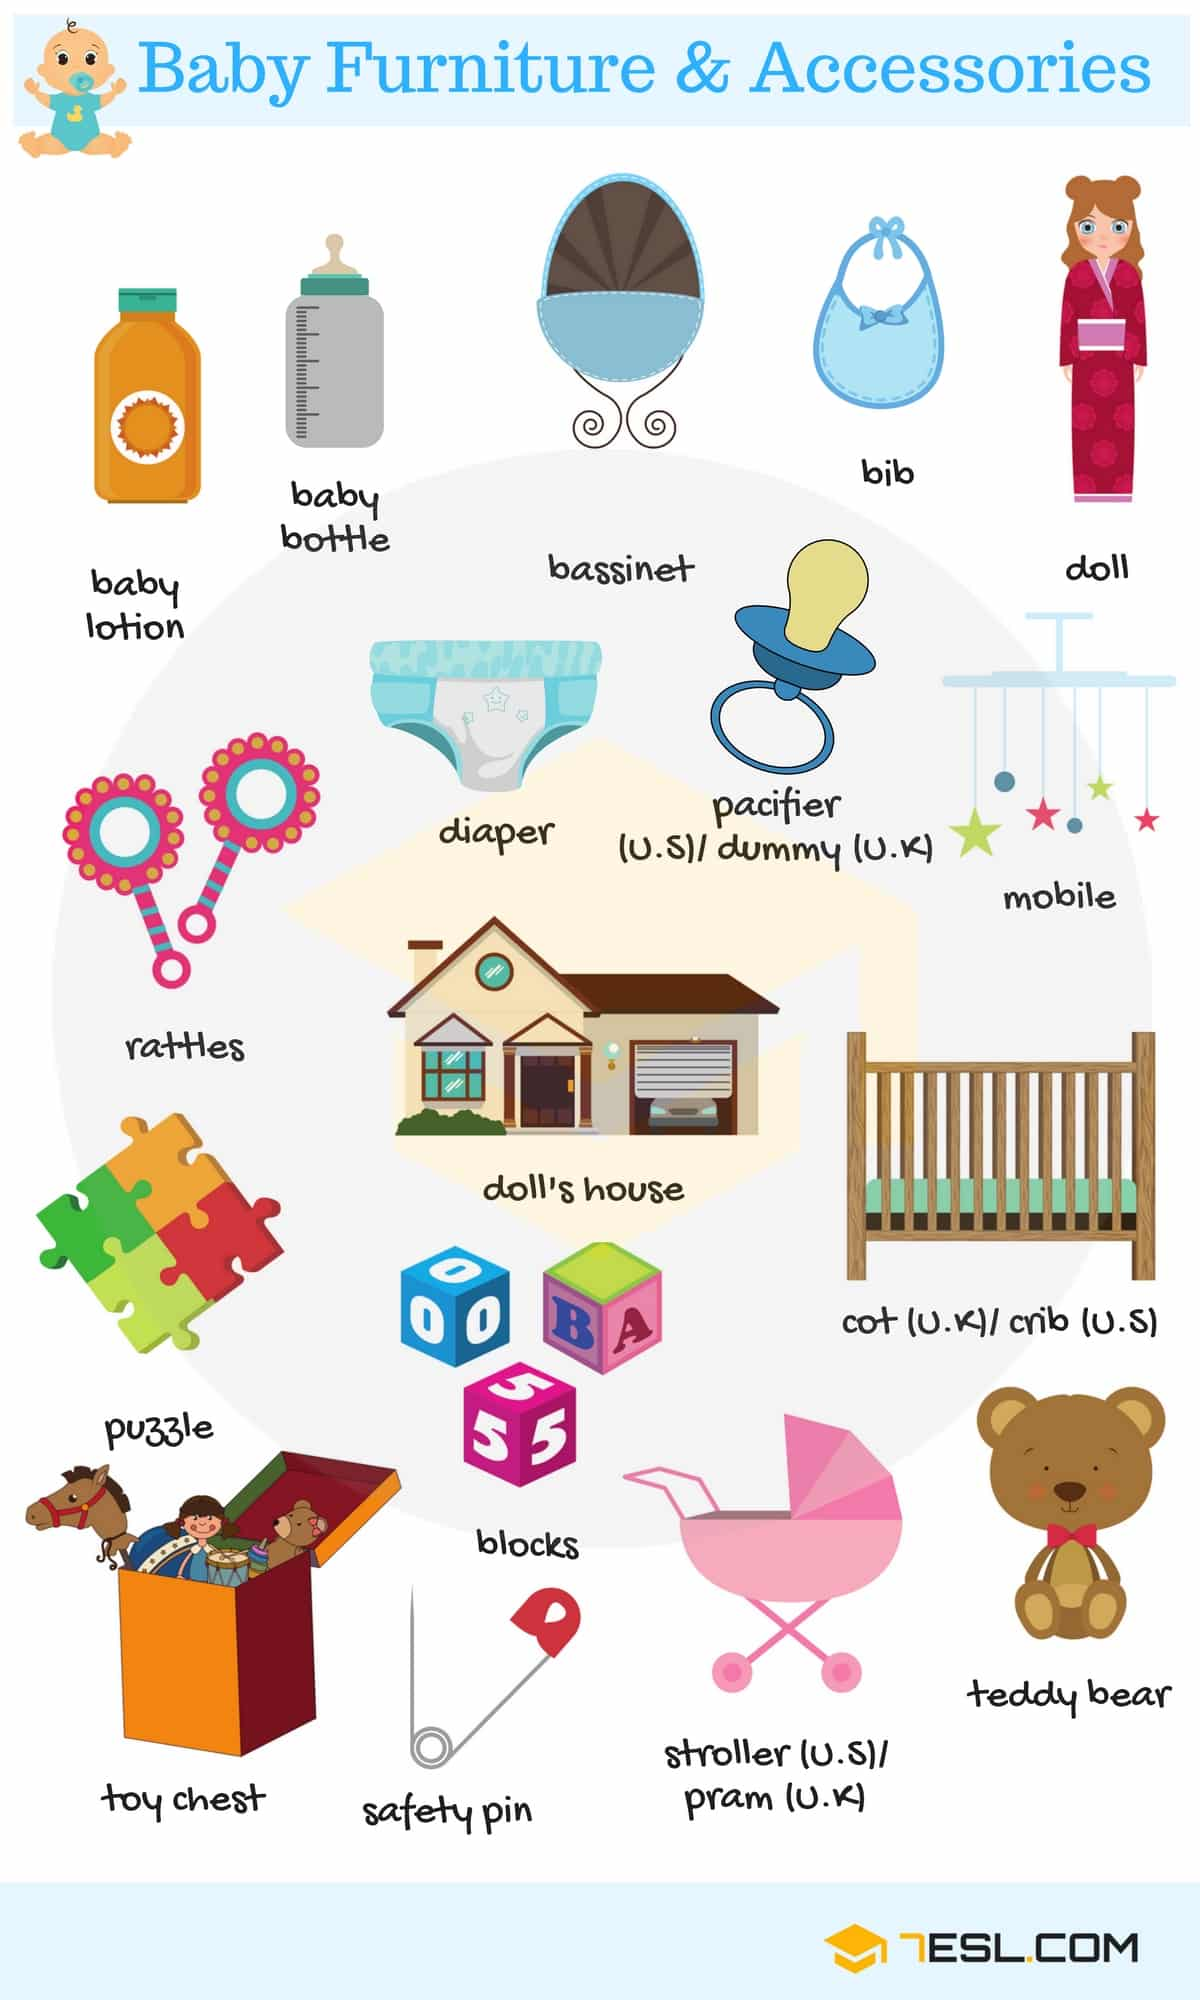 Baby Furniture and Accessories Vocabulary | Image